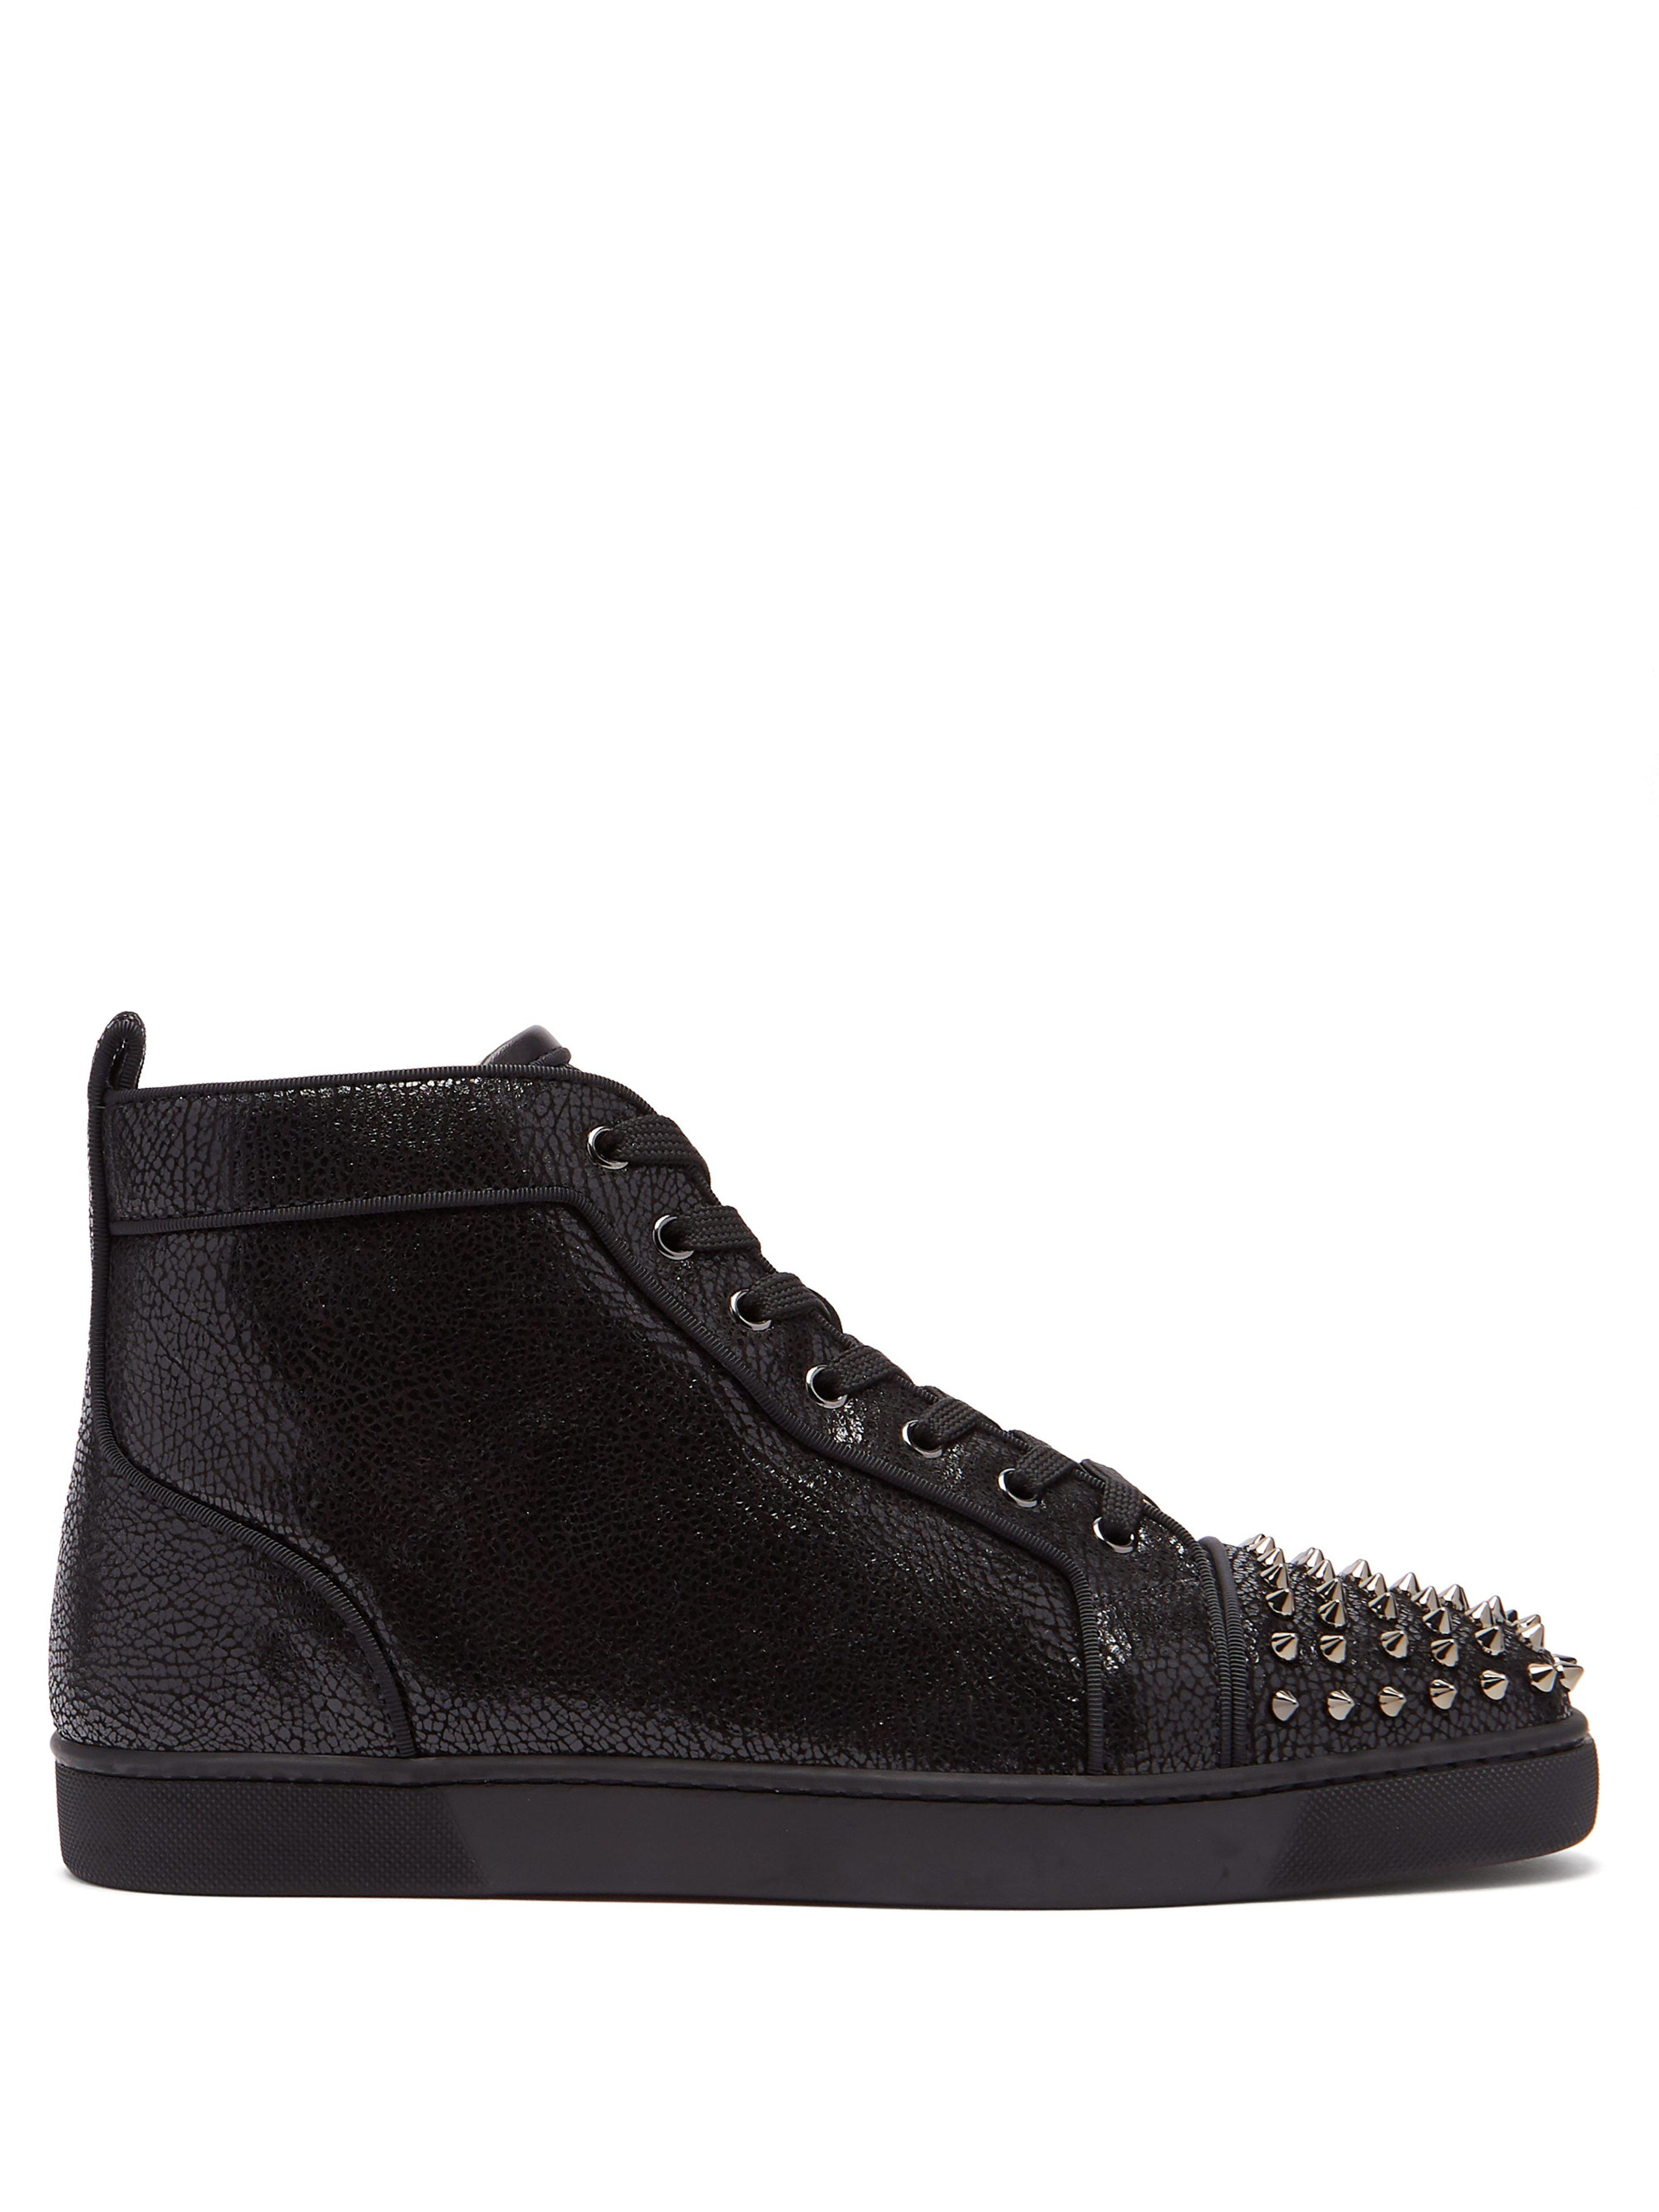 27084b8dfc9e Christian Louboutin. Men s Black Lou Spike Embellished Leather High Top  Trainers